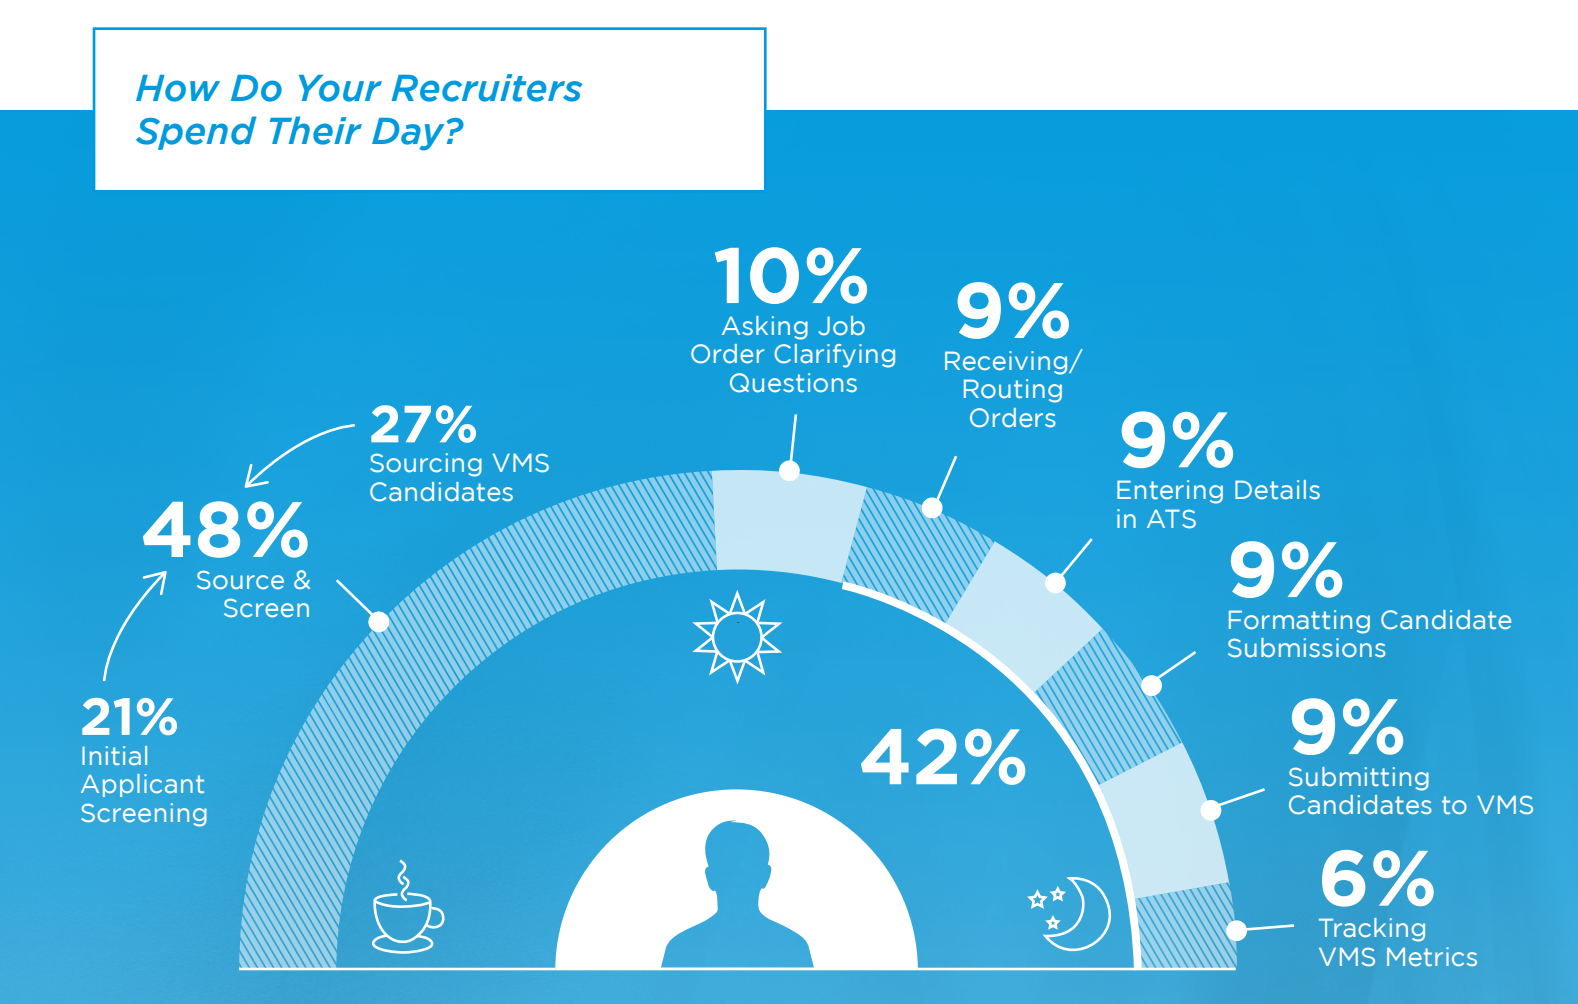 How do Recruiters spend their time on VMS?